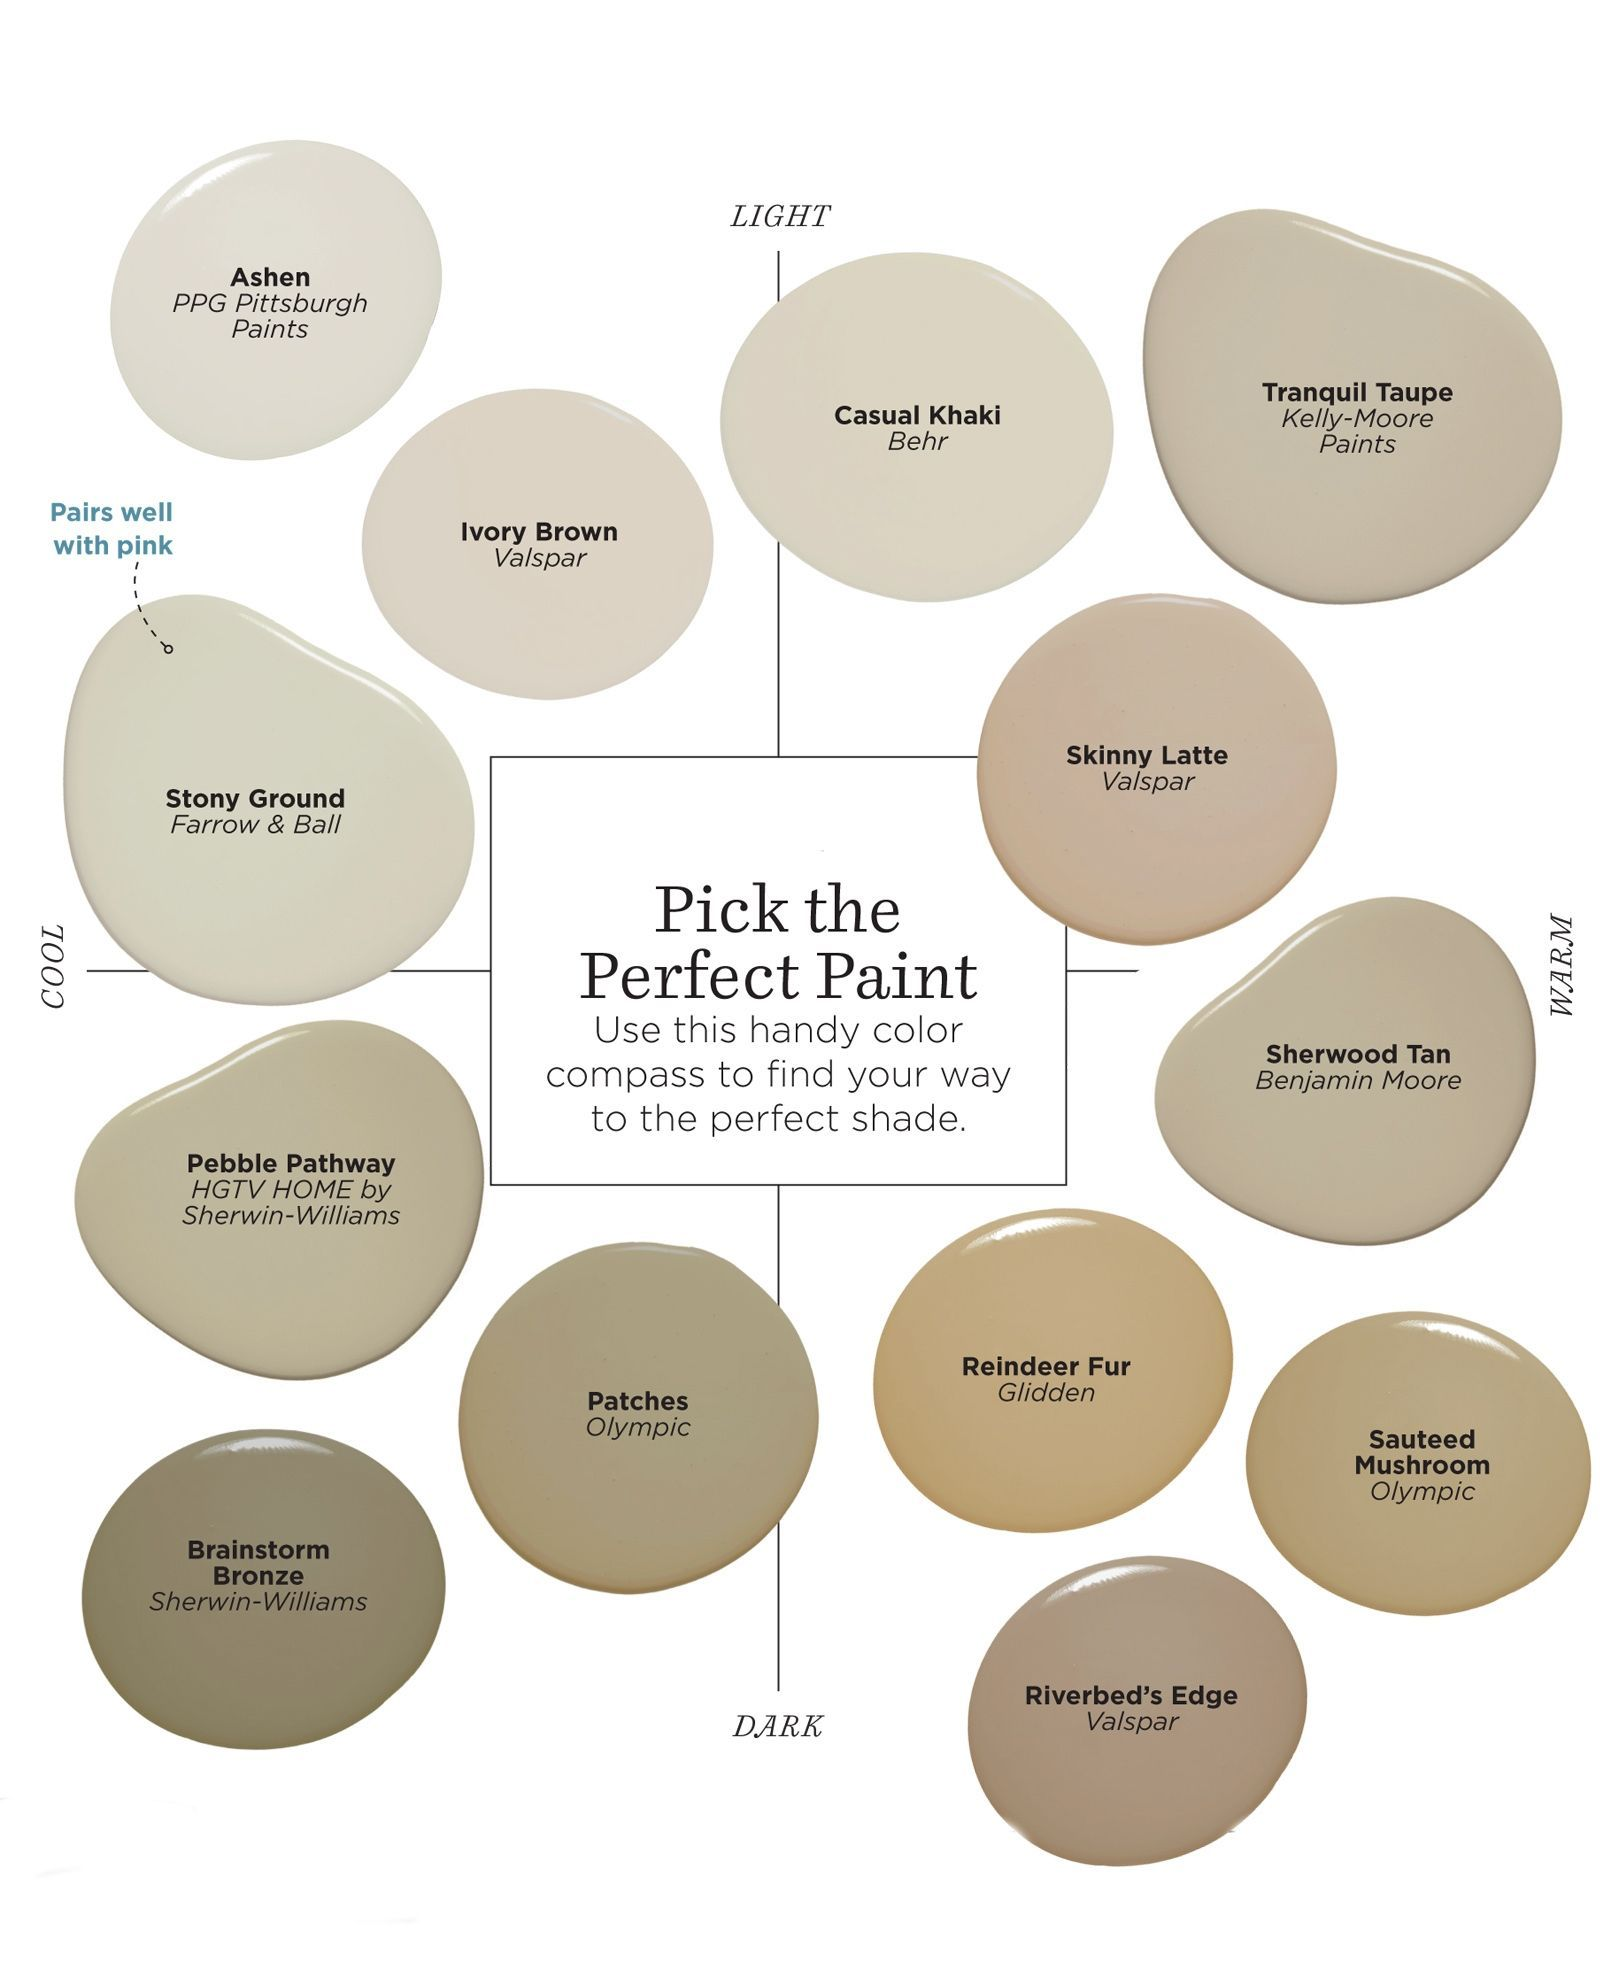 Forget Taupe: A New Color Is Taking Over Homes and Pinterest in 2017 ...